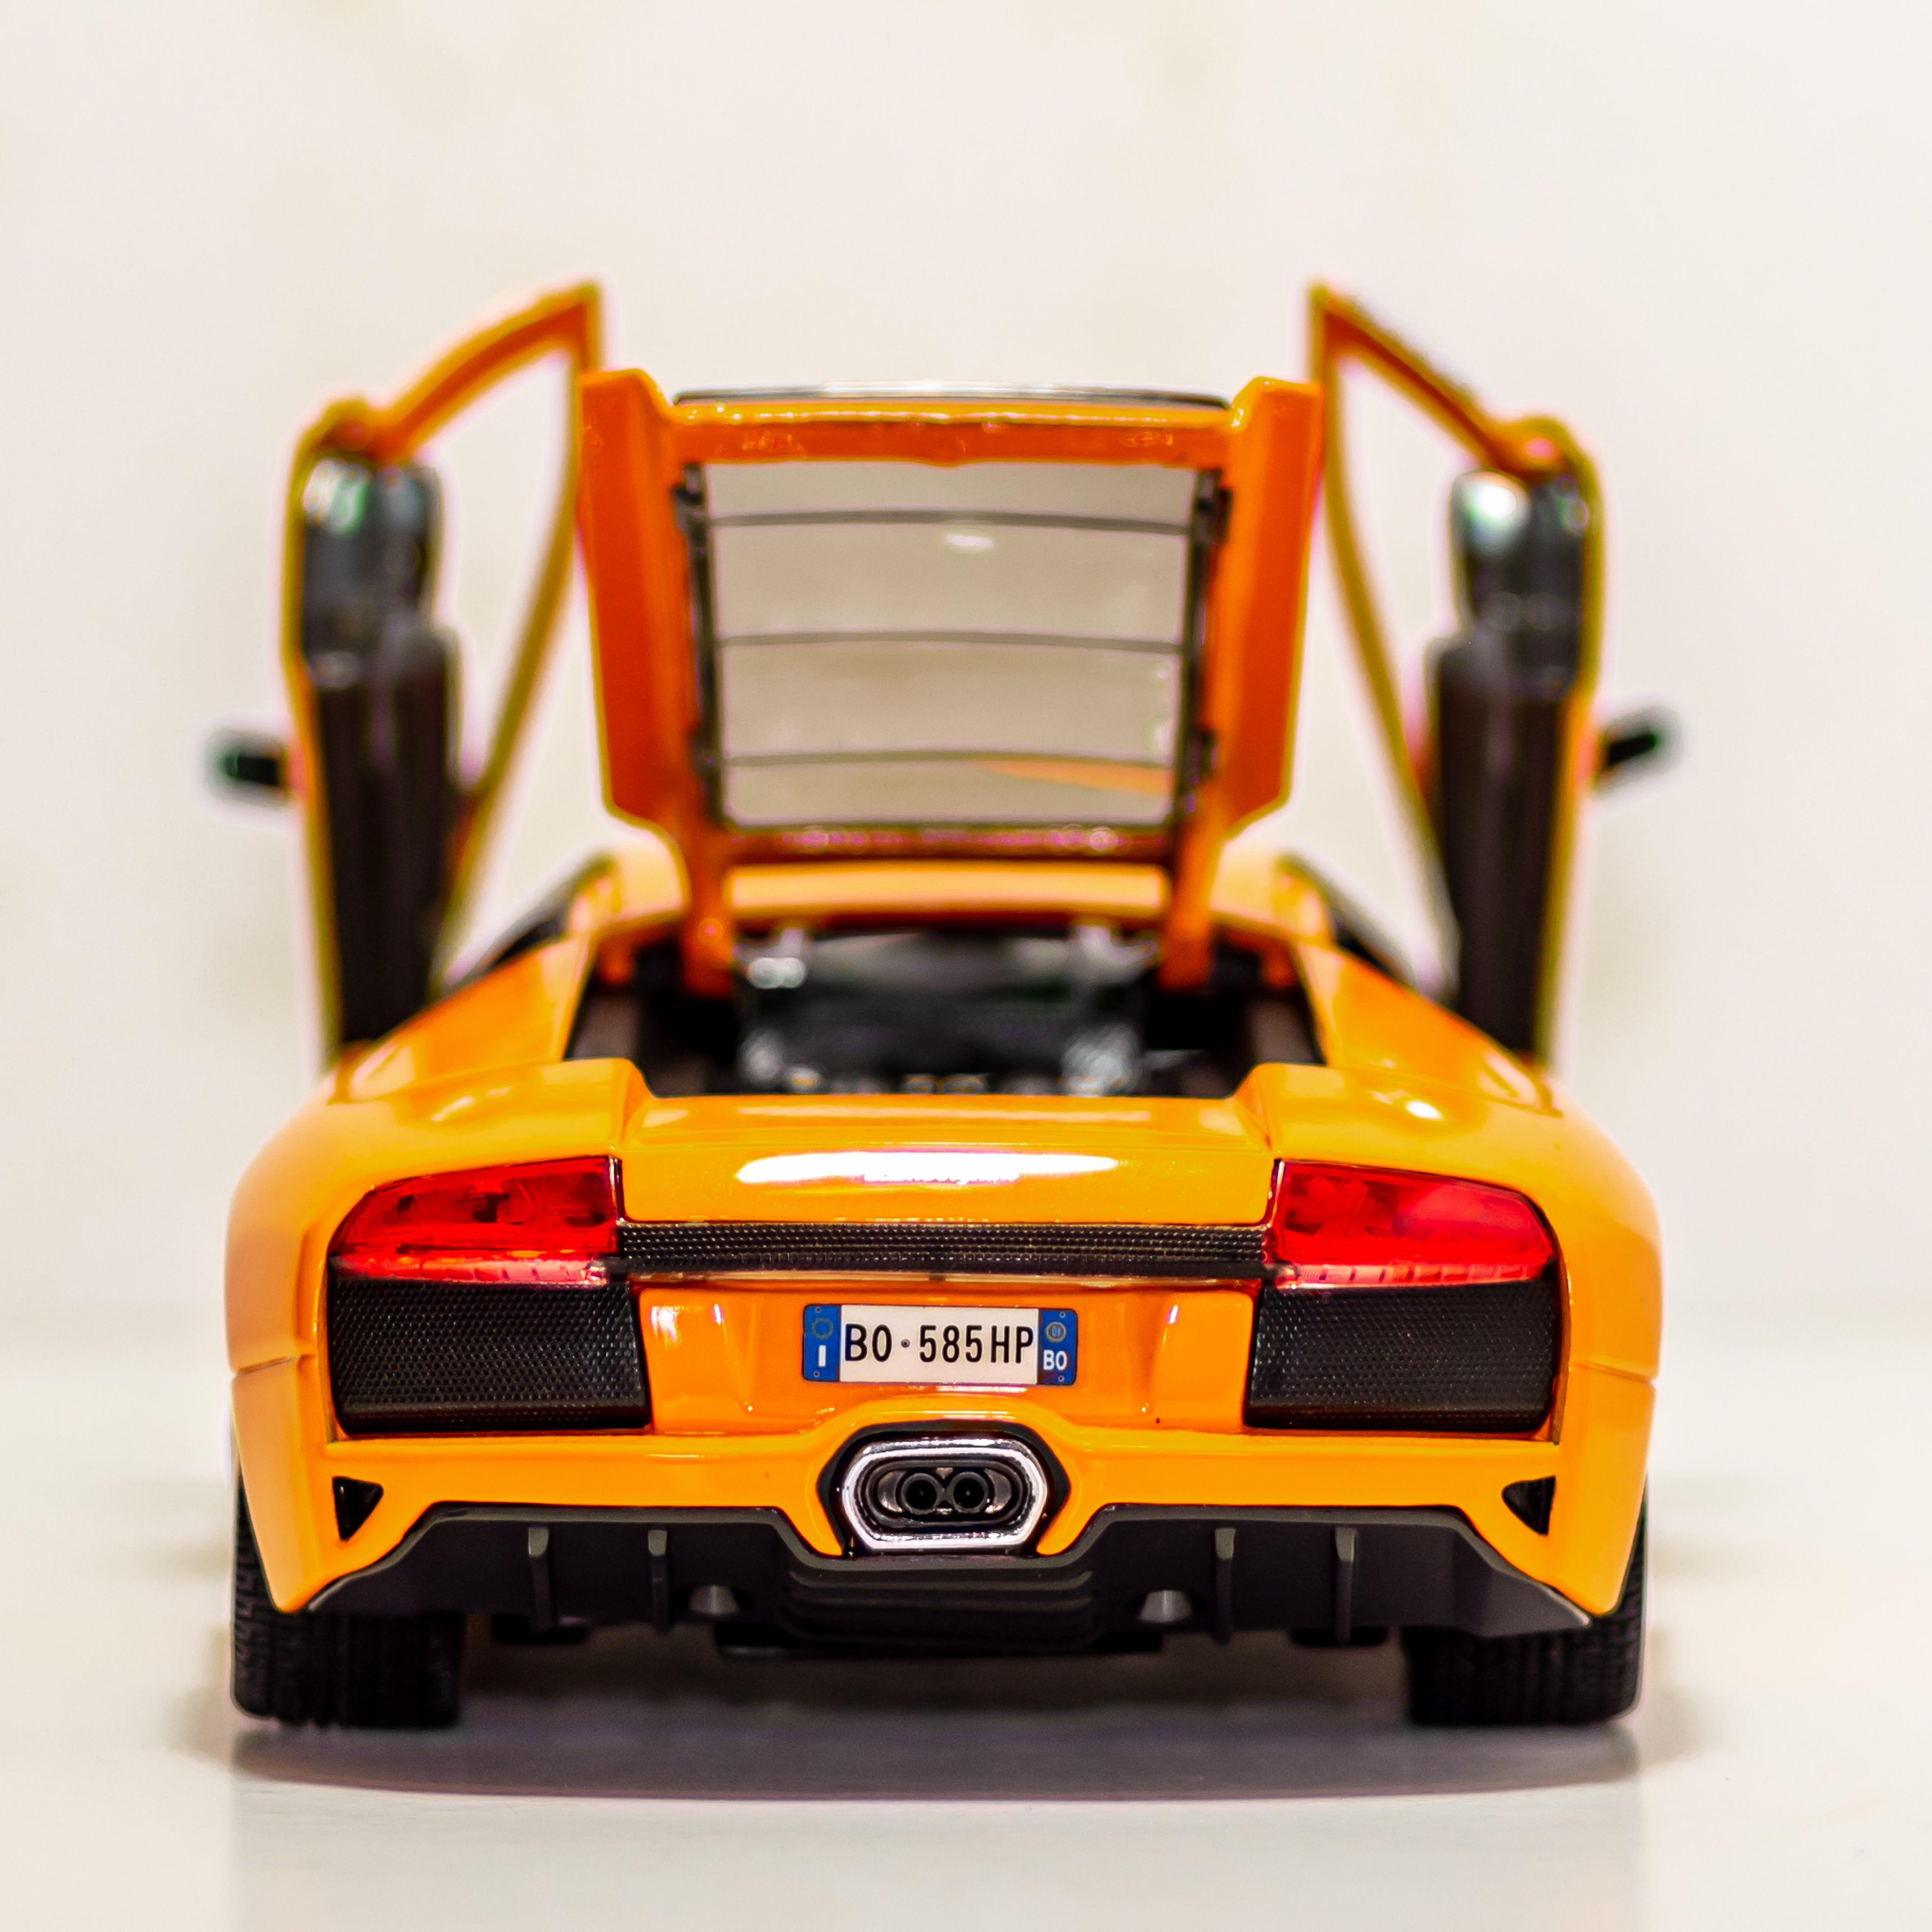 2010 Arancio Atlas Lamborghini Murcielago LP640 Maisto Diecast Vehicle 1:18 Scale NO 11115 Made in China - Vintage Heaven Shop